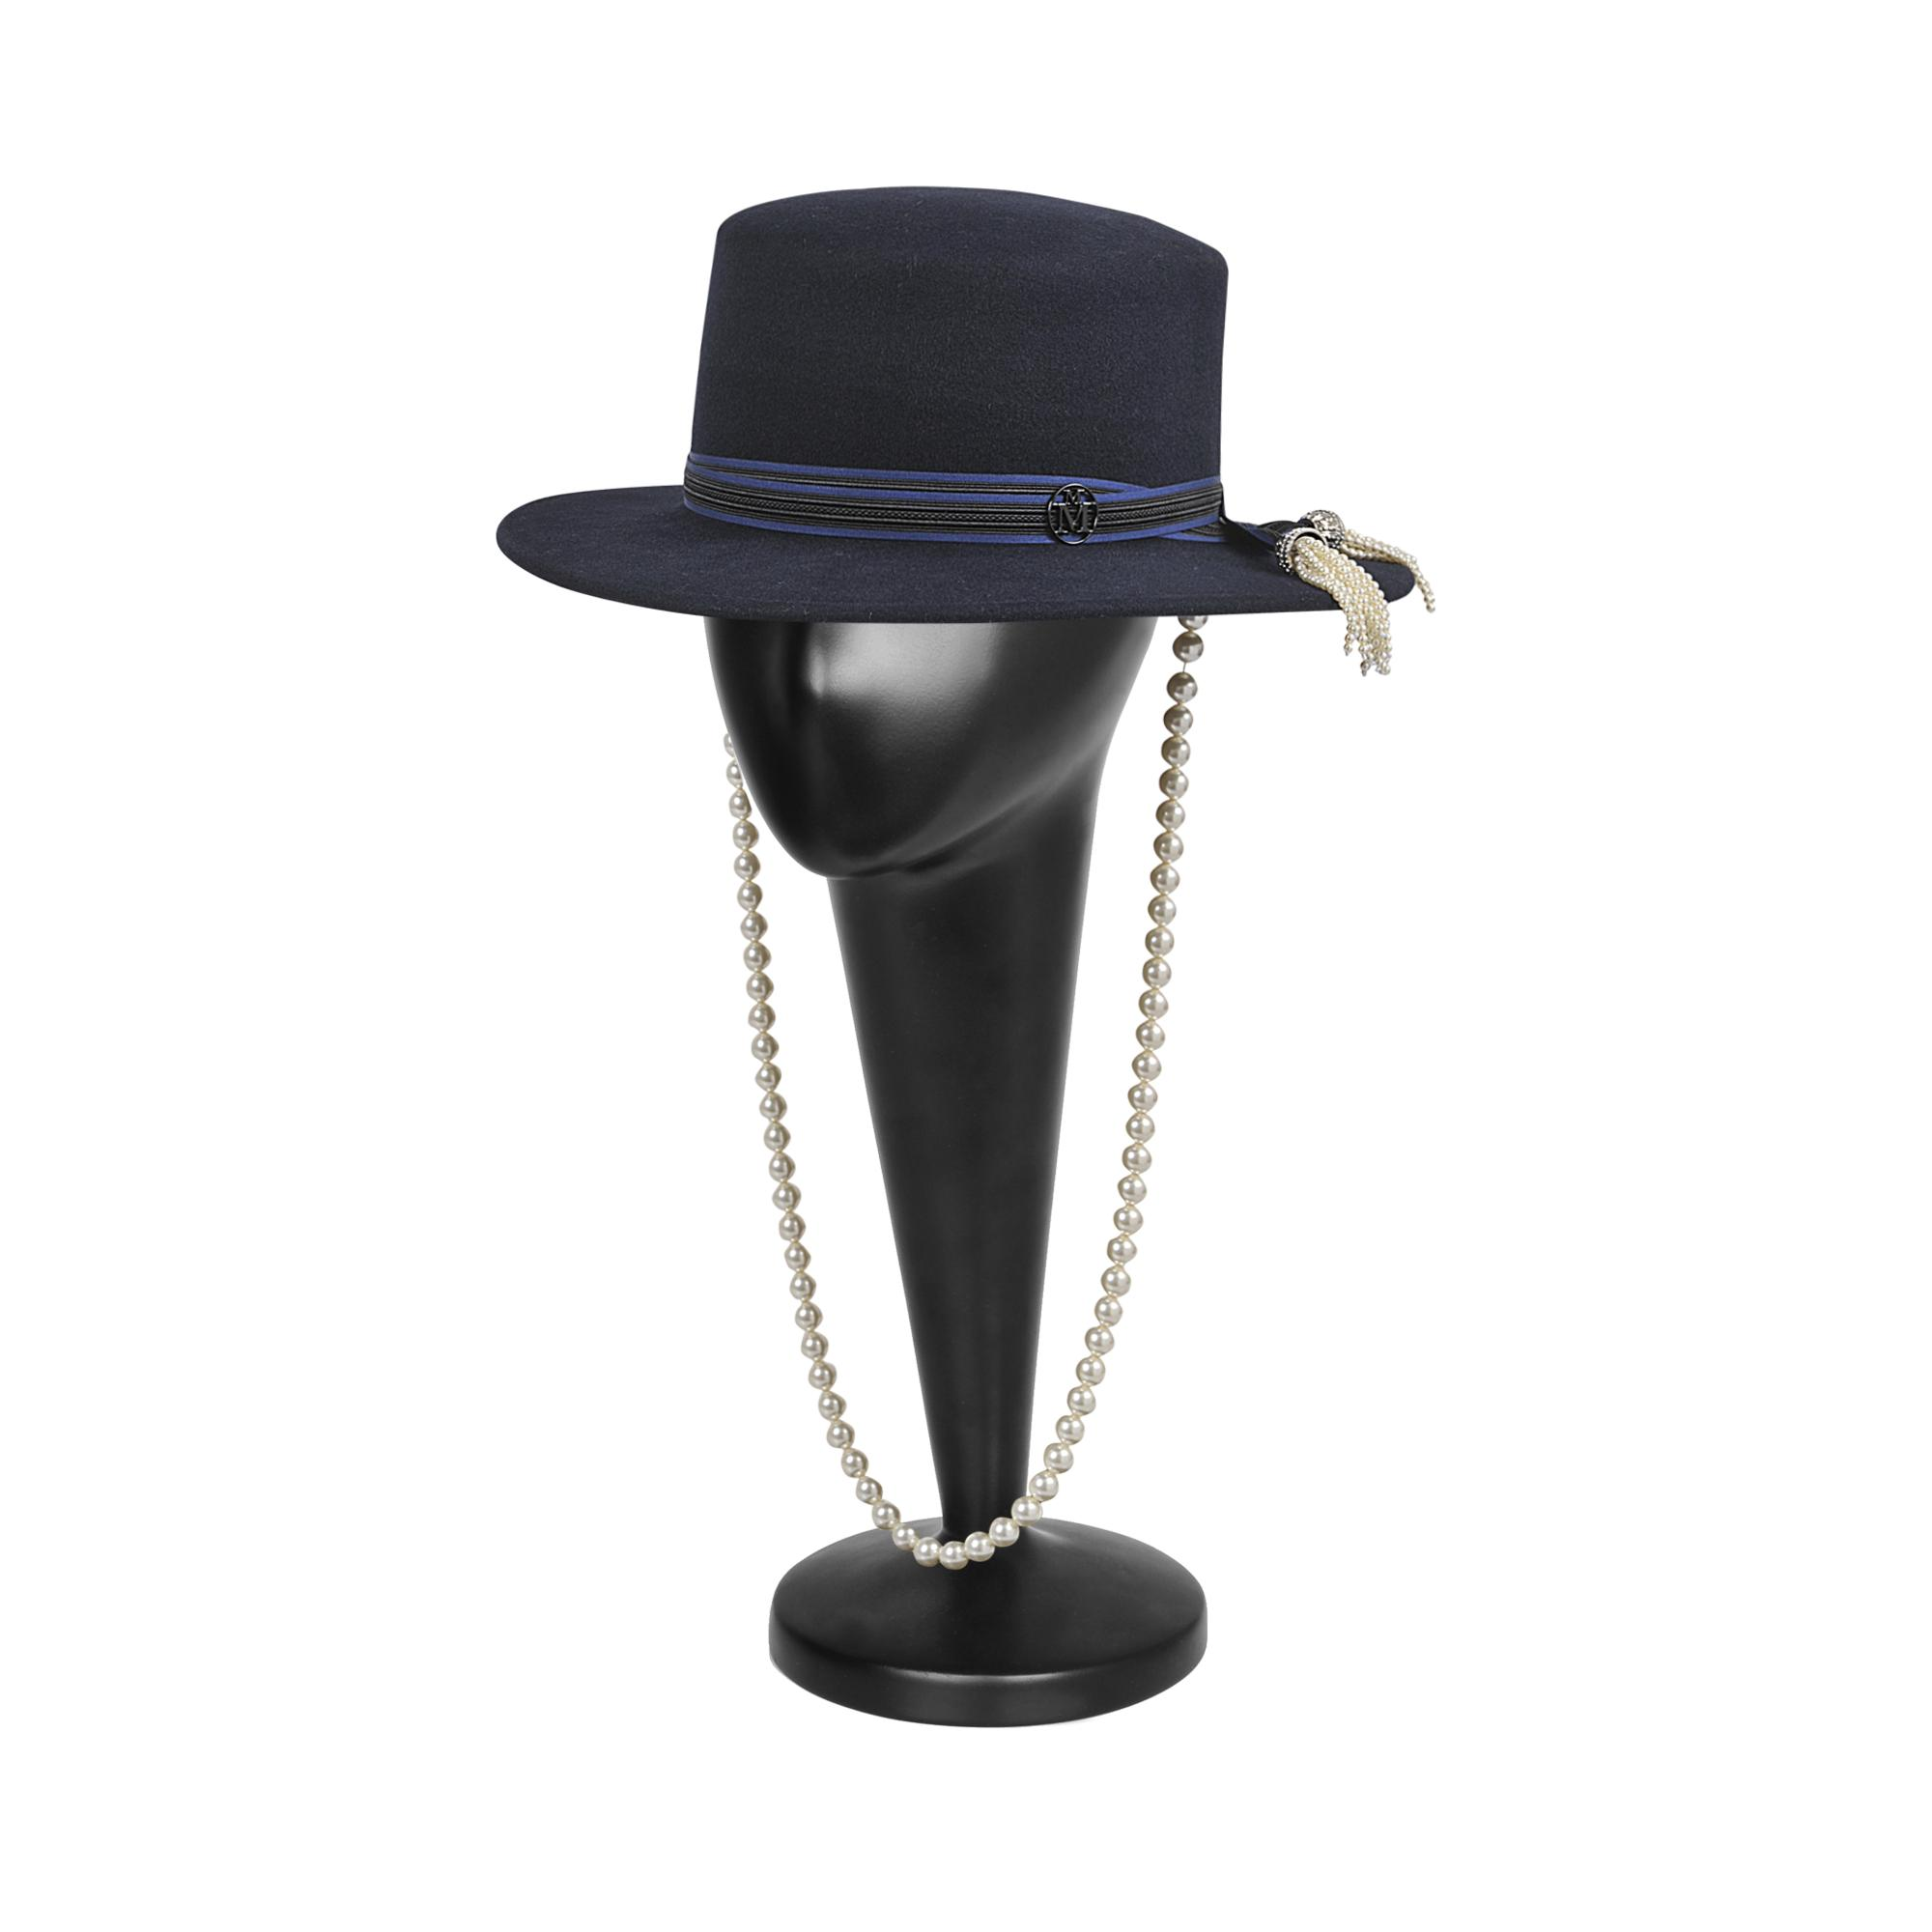 Precious Relic Kiki Hat Maison Michel High Quality Buy Online For Nice For Sale Cheap Low Shipping Fee Geniue Stockist Online zIiACfV